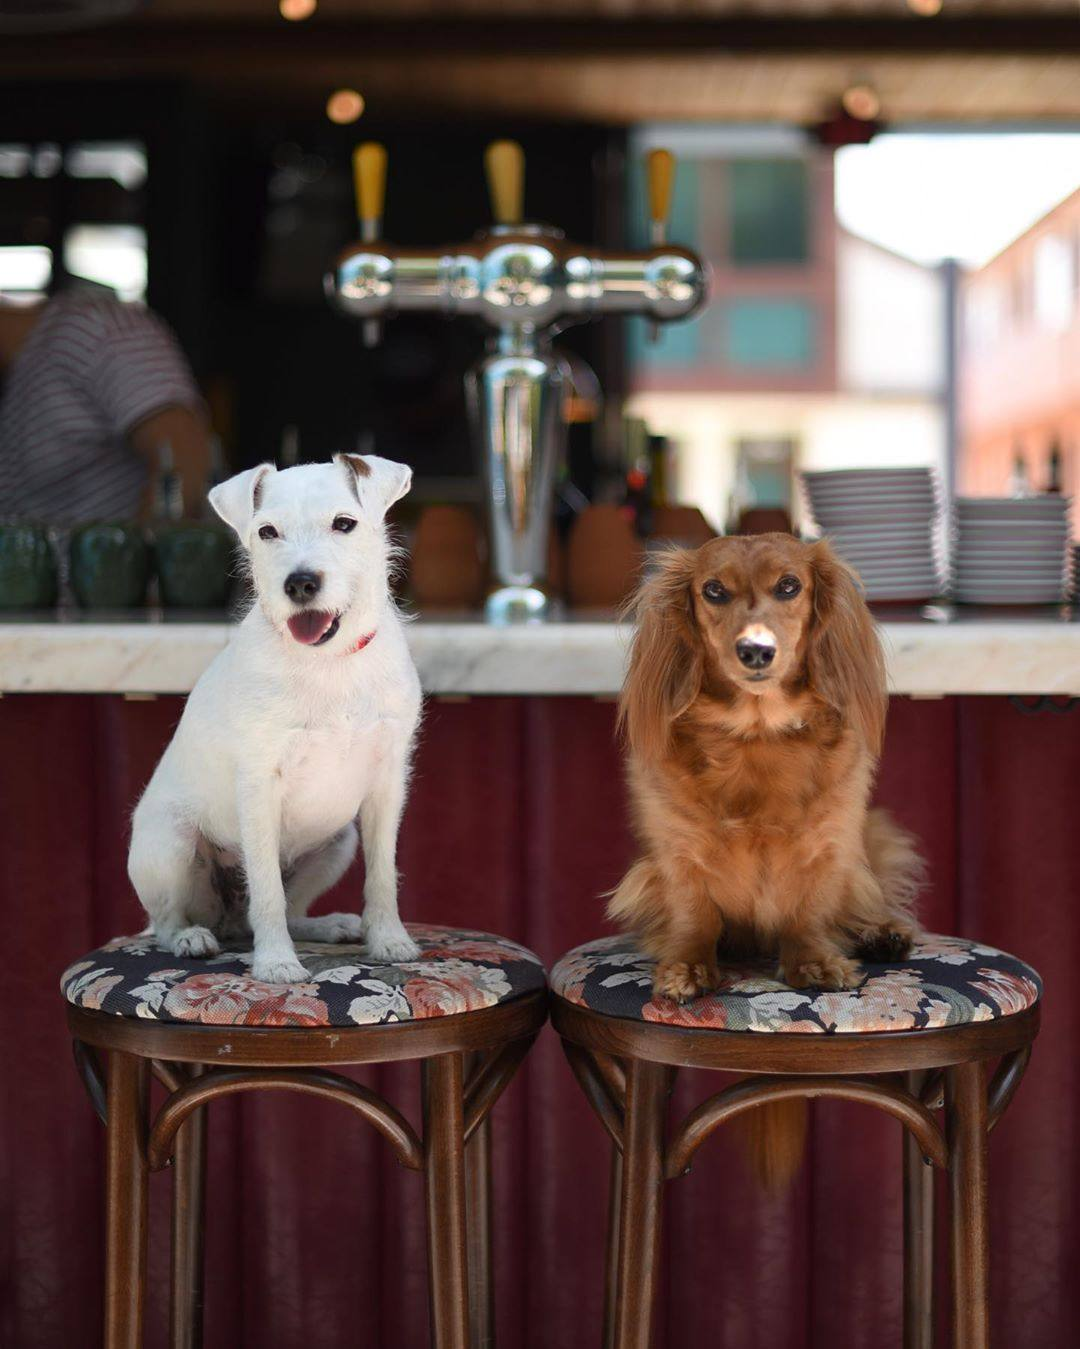 Django and Chloe enjoying Happy Hour at Simonette | Photo: @django_and_chloe, Instagram